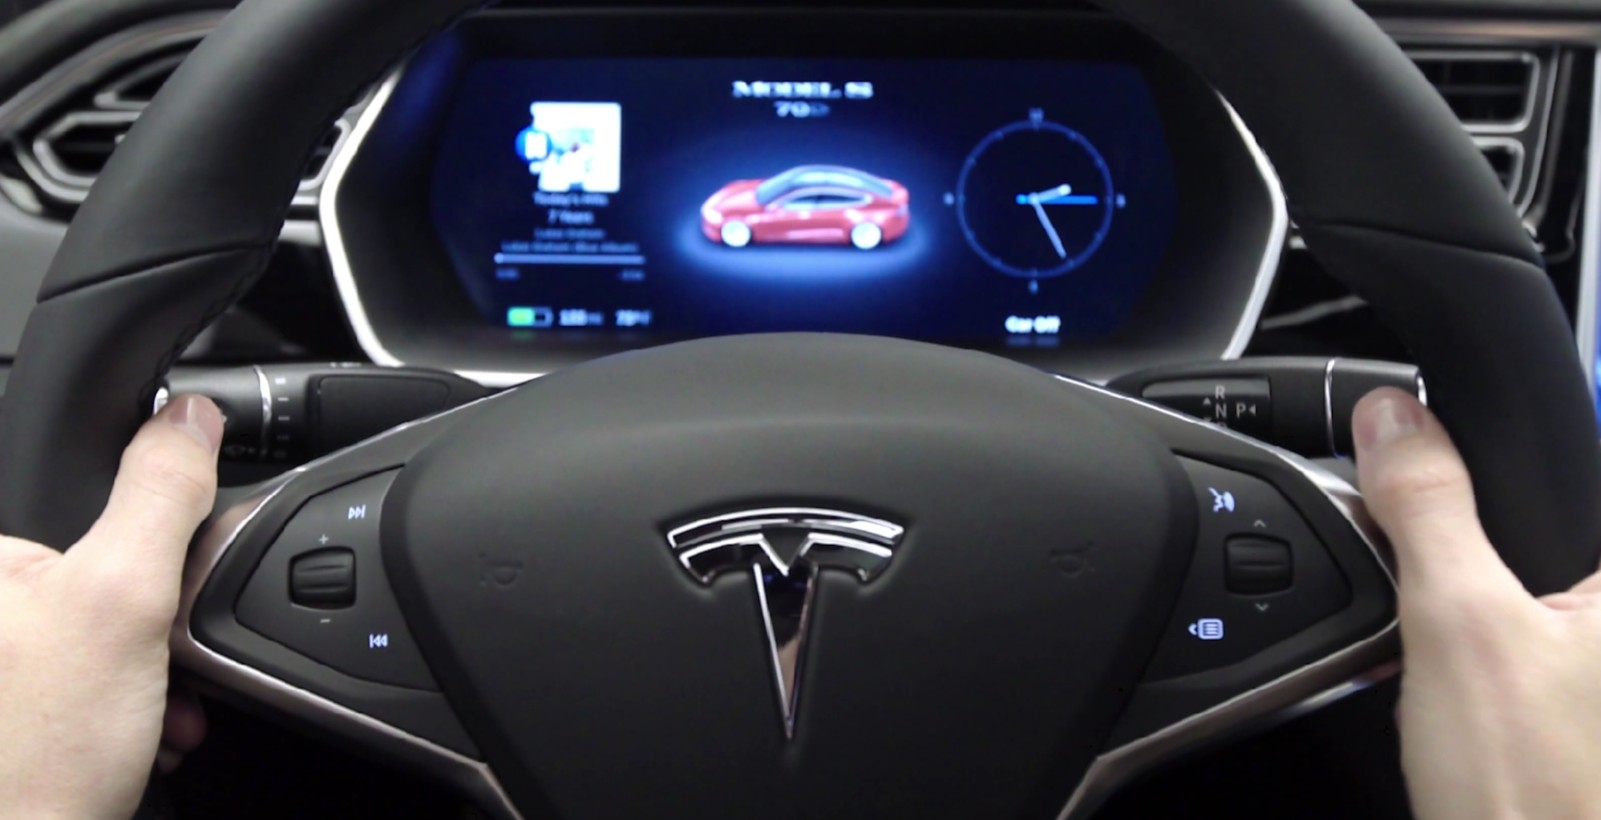 Tesla VP Wants to 'accelerate the Path to Cars Being Appliances'